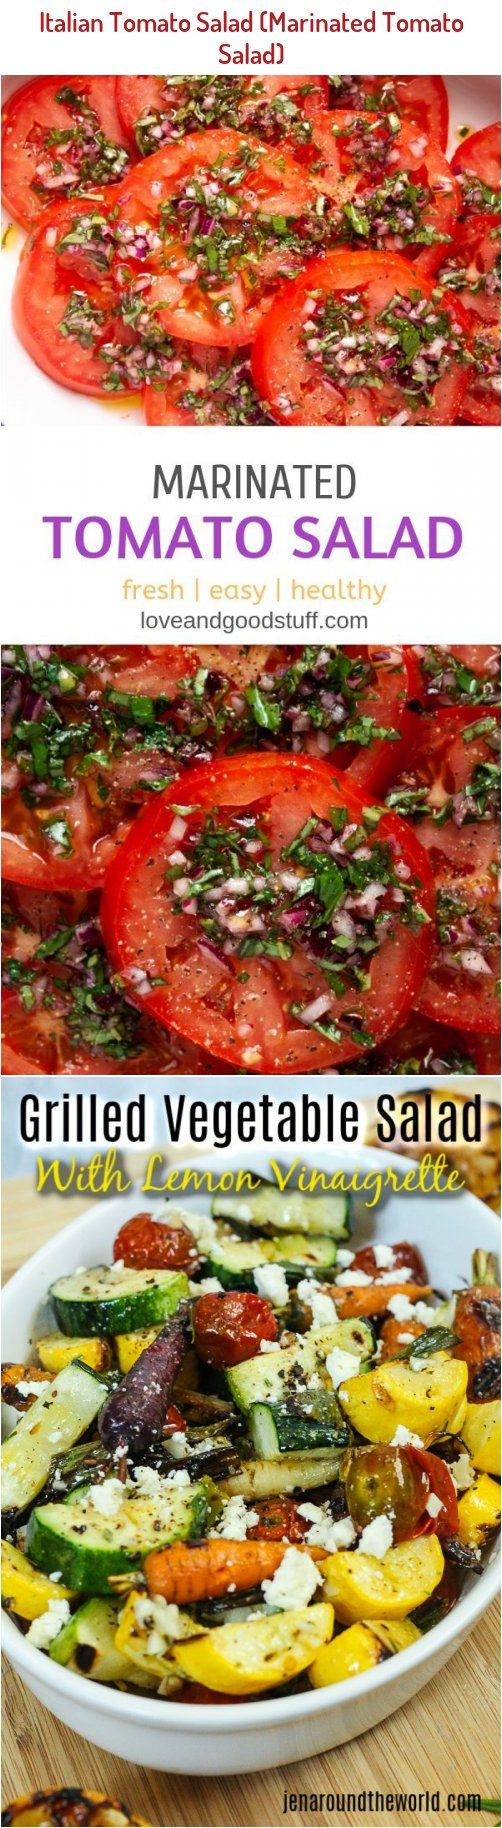 Perfectly Ripe Juicy Tomatoes Marinated In Olive Oil Red Wine Vinagar Basil And Garlic This Delicious In 2020 Tomato Salad Grilled Vegetable Salads Juicy Tomatoes